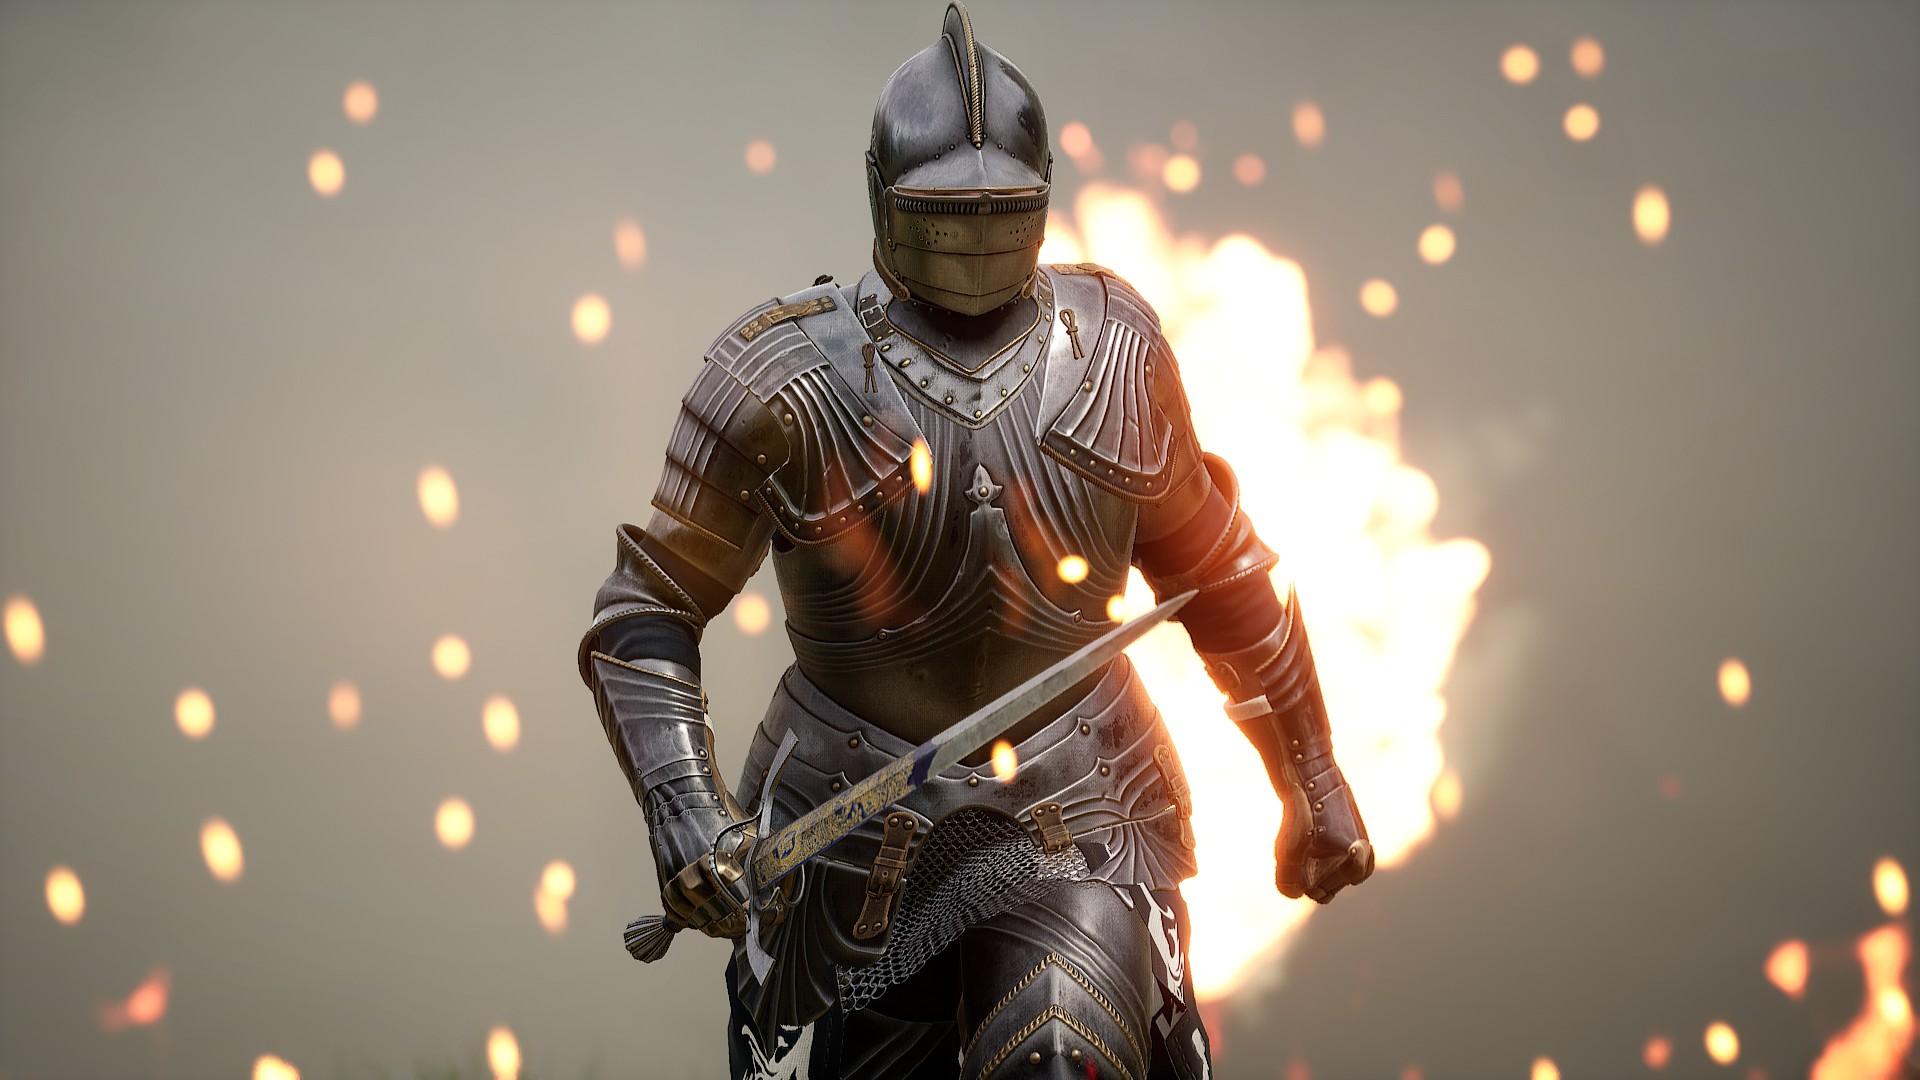 Mordhau tier list: The best weapons to use in Mordhau | PC Gamer